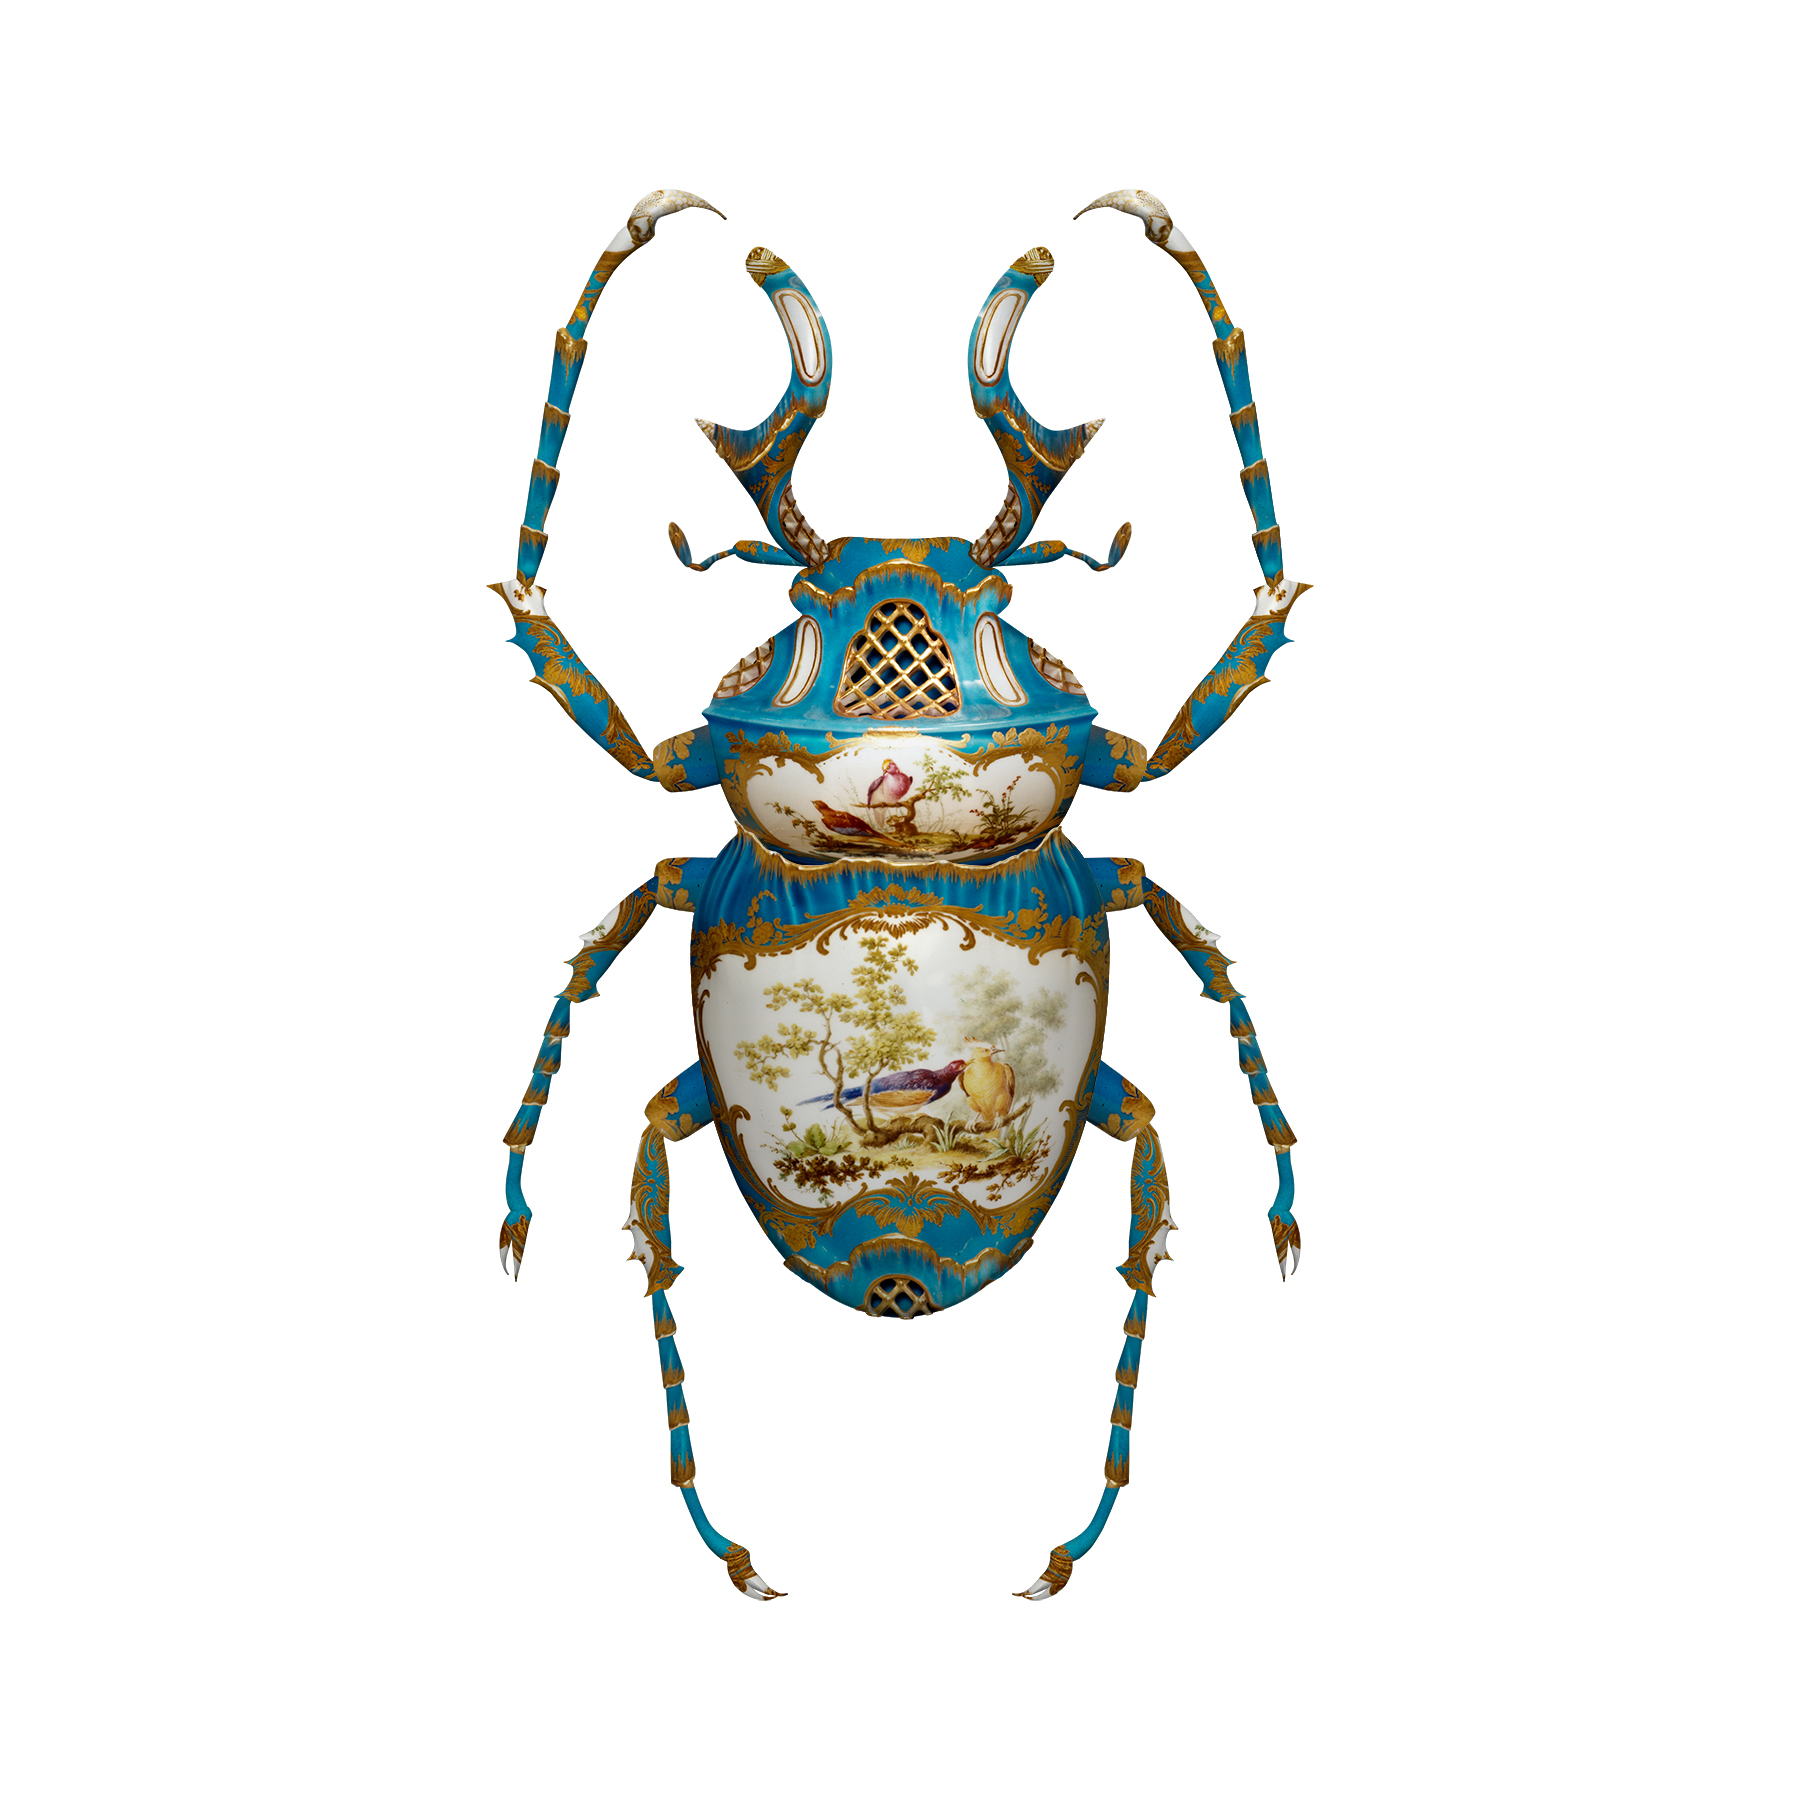 Visual Artwork: SÈVRES DICRANOCEPHALUS WALLICHII by artist and creator Magnus Gjoen